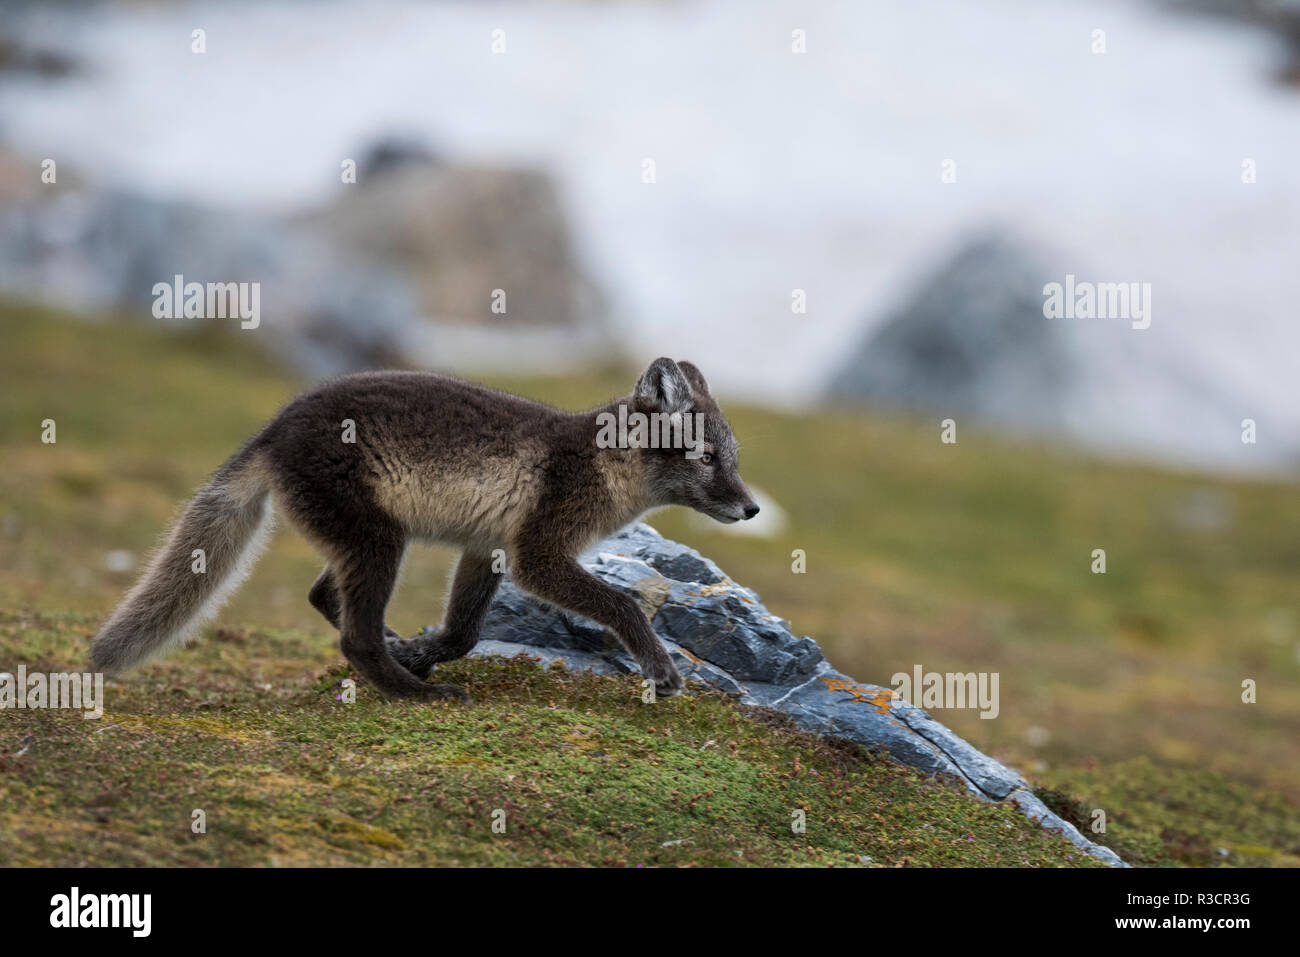 Norway, Svalbard, Spitsbergen. Hornsund, Gnalodden, arctic fox (Vulpes Lagopus) with summer coat. Stock Photo